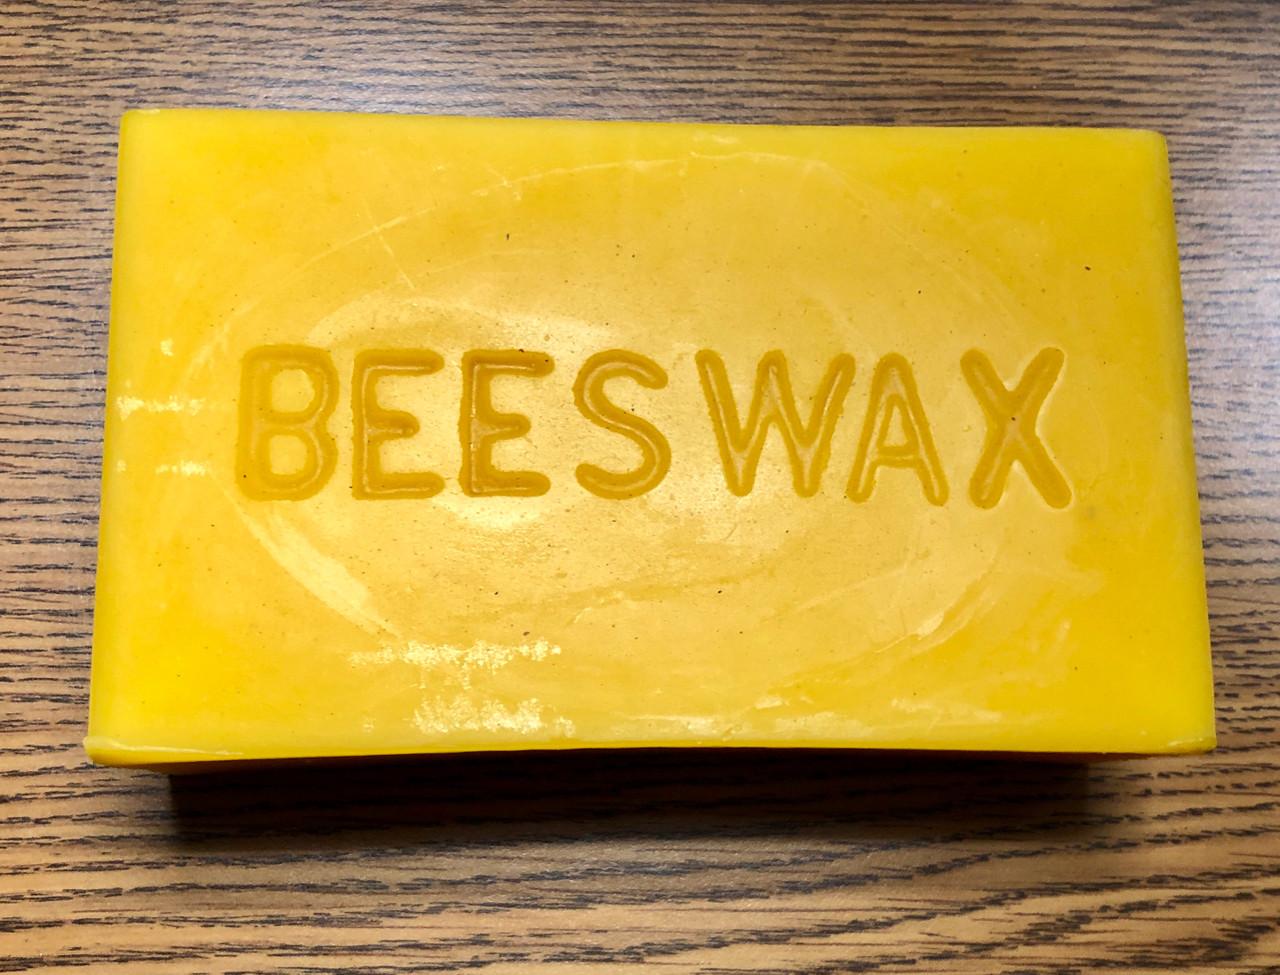 Roughly one pound of untreated natural beeswax